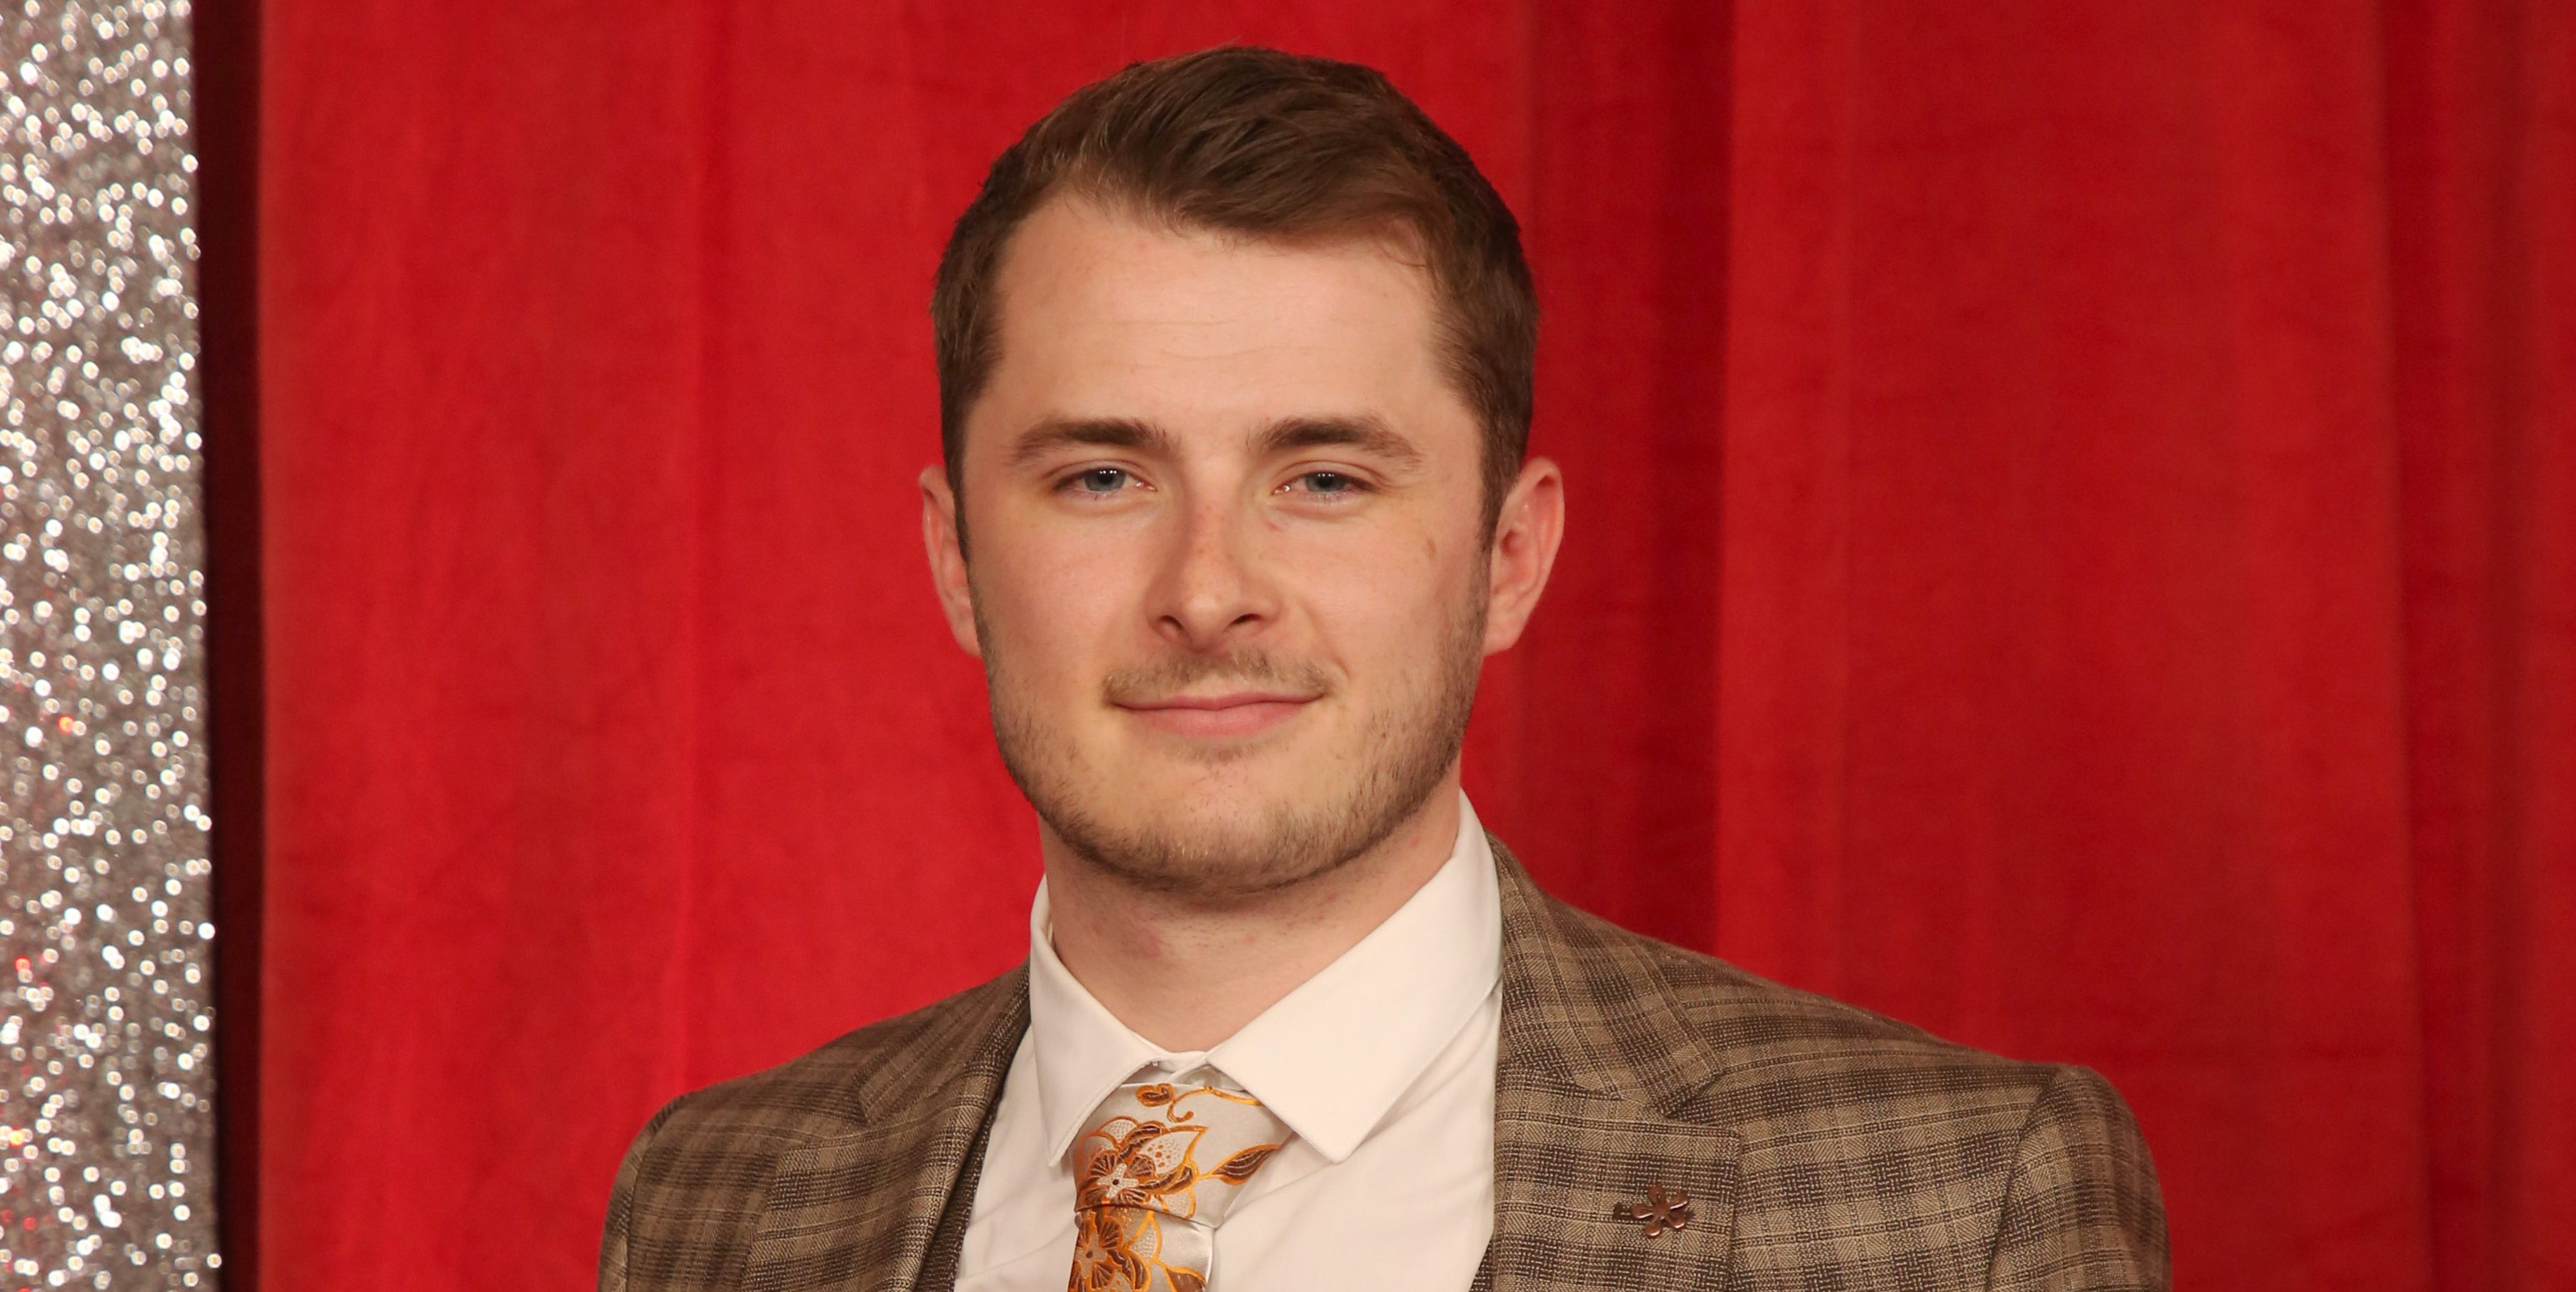 EastEnders bosses lied to Max Bowden about Ben Mitchell role